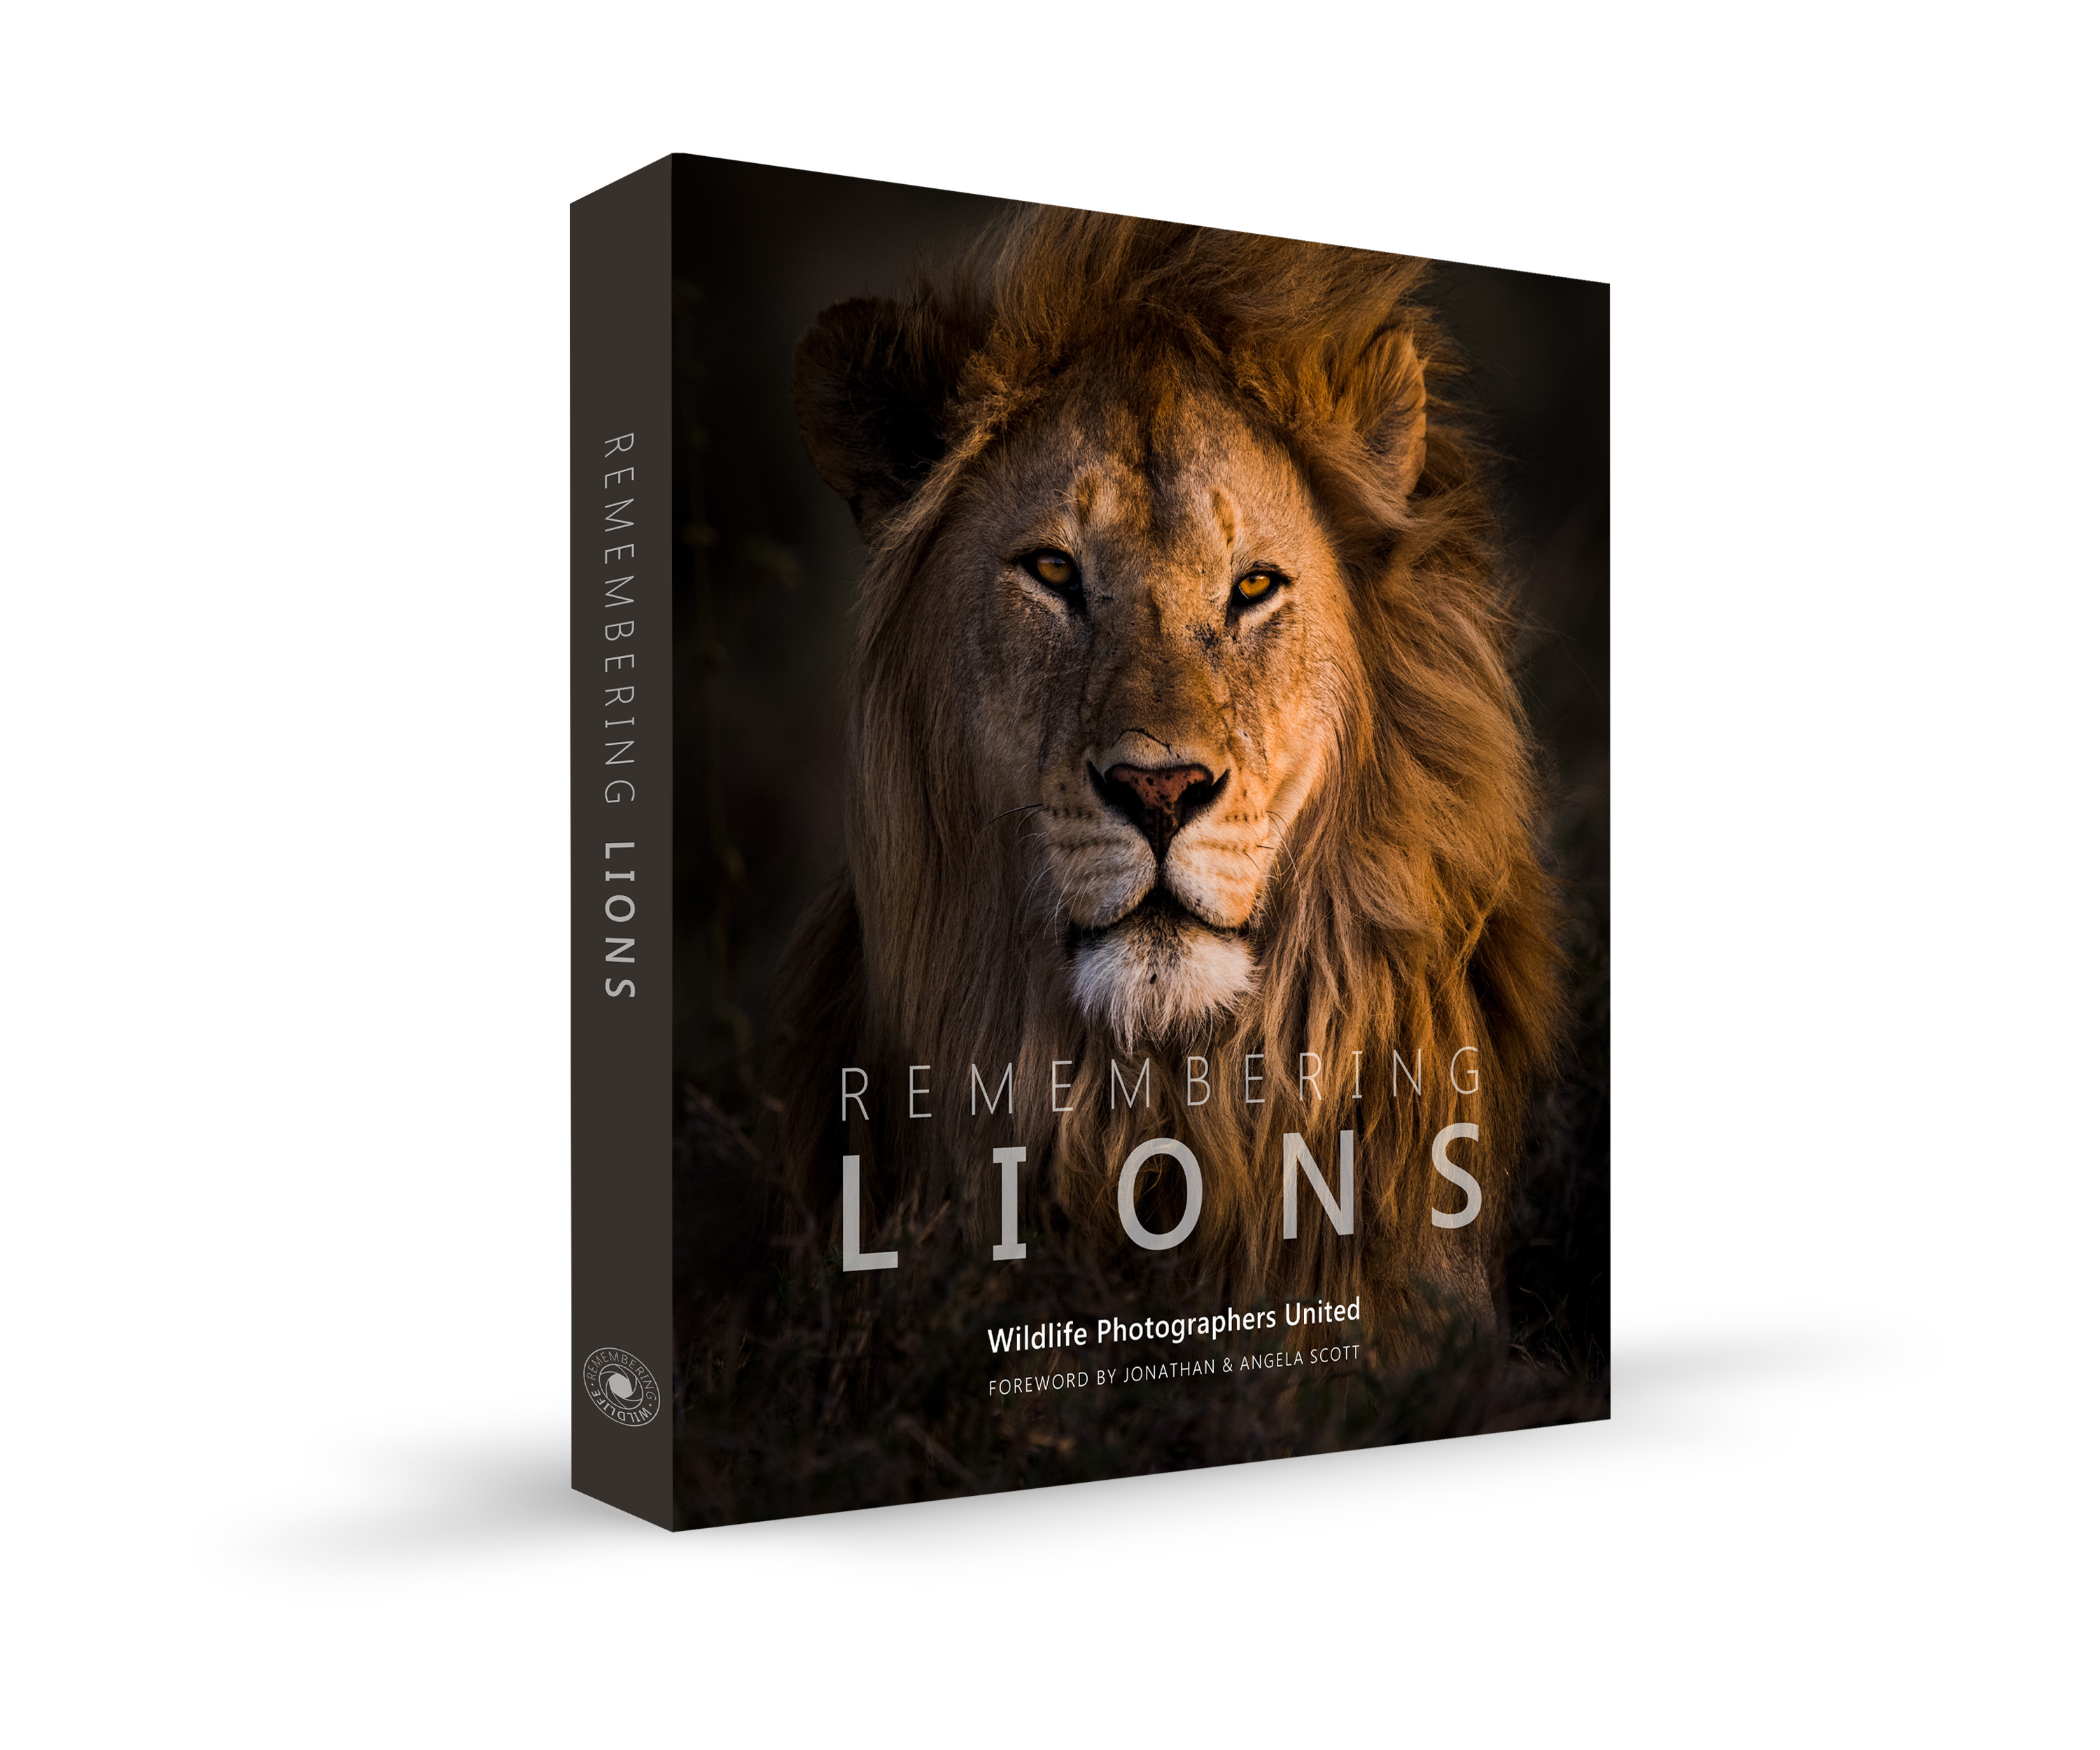 Remembering Lions book cover